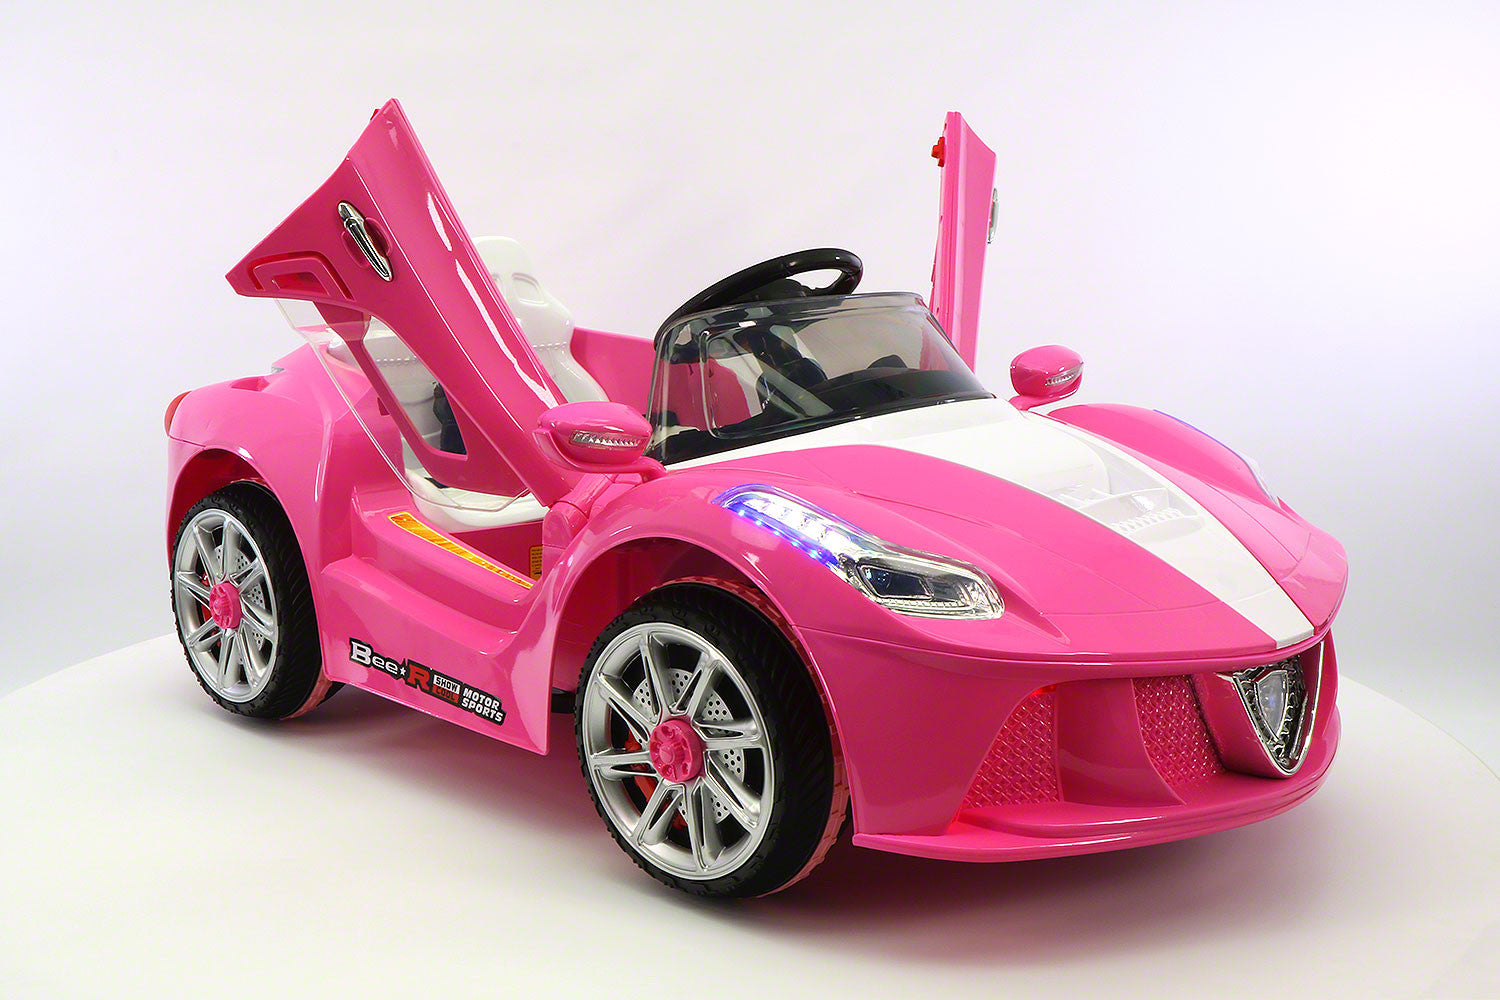 2017 12v ferrari style kids battery powered wheels ride on car with mp3 and parental remote control in pink